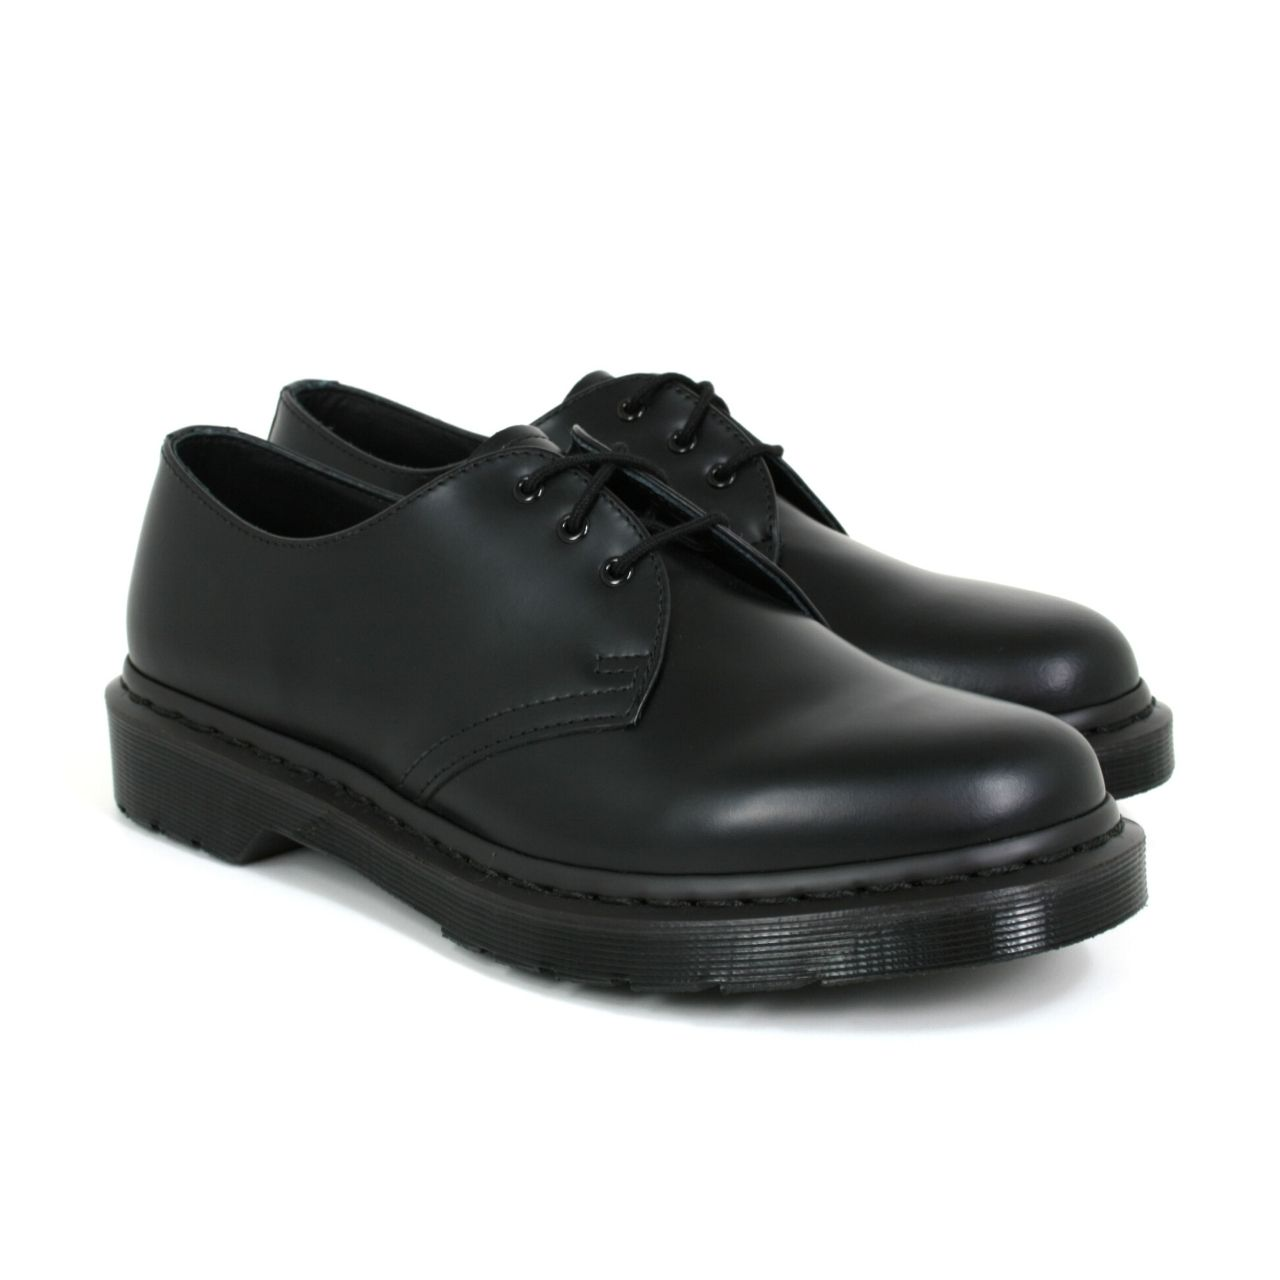 Dr. Martens - 1461 MONO - Black Smooth